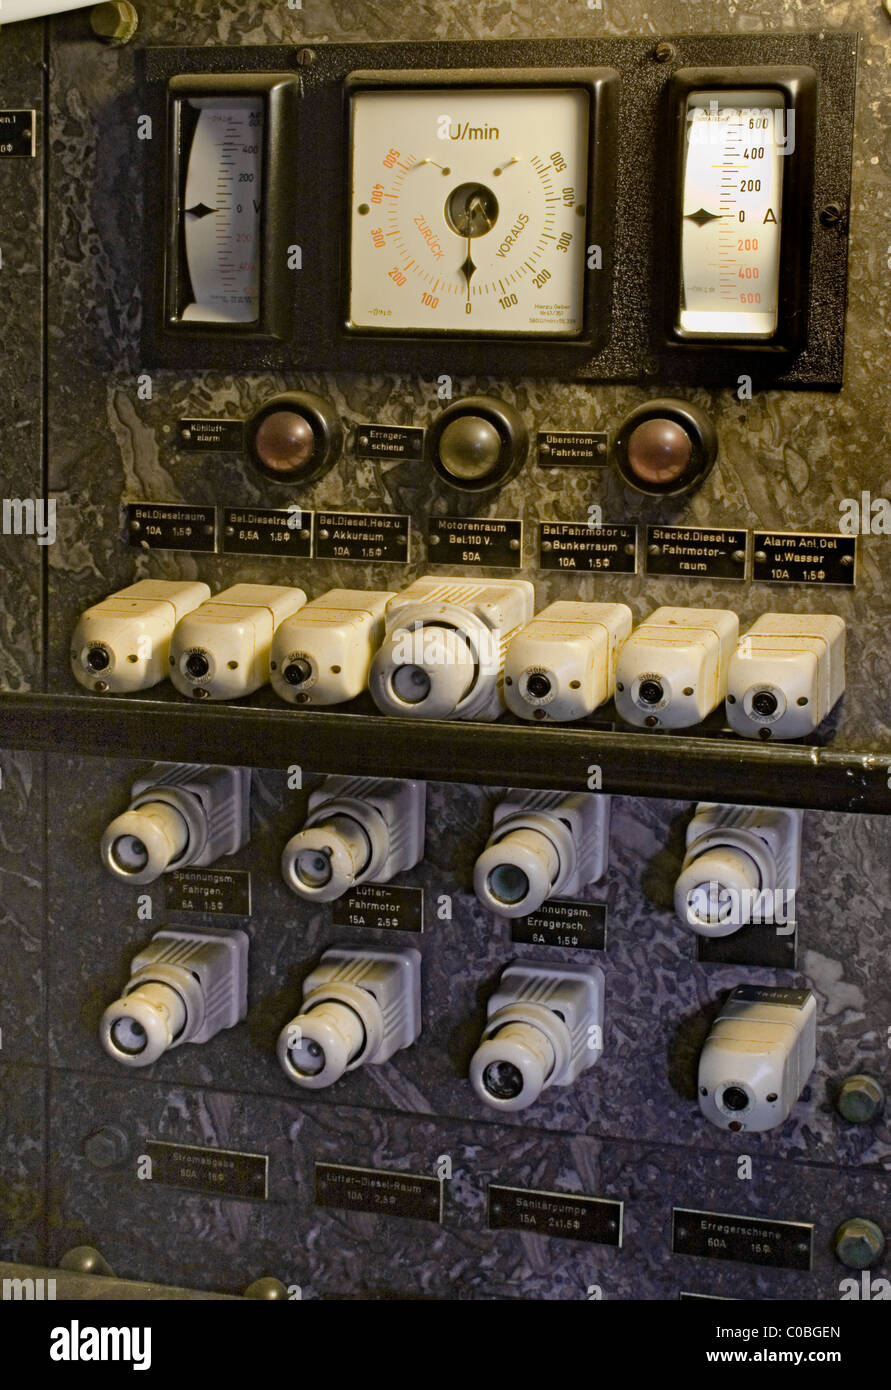 Electronic Meter Stock Photos Images Alamy Wasser Liquid Level Control Switch Ls 15 Vintage Controls With Gauges And Fuses Image